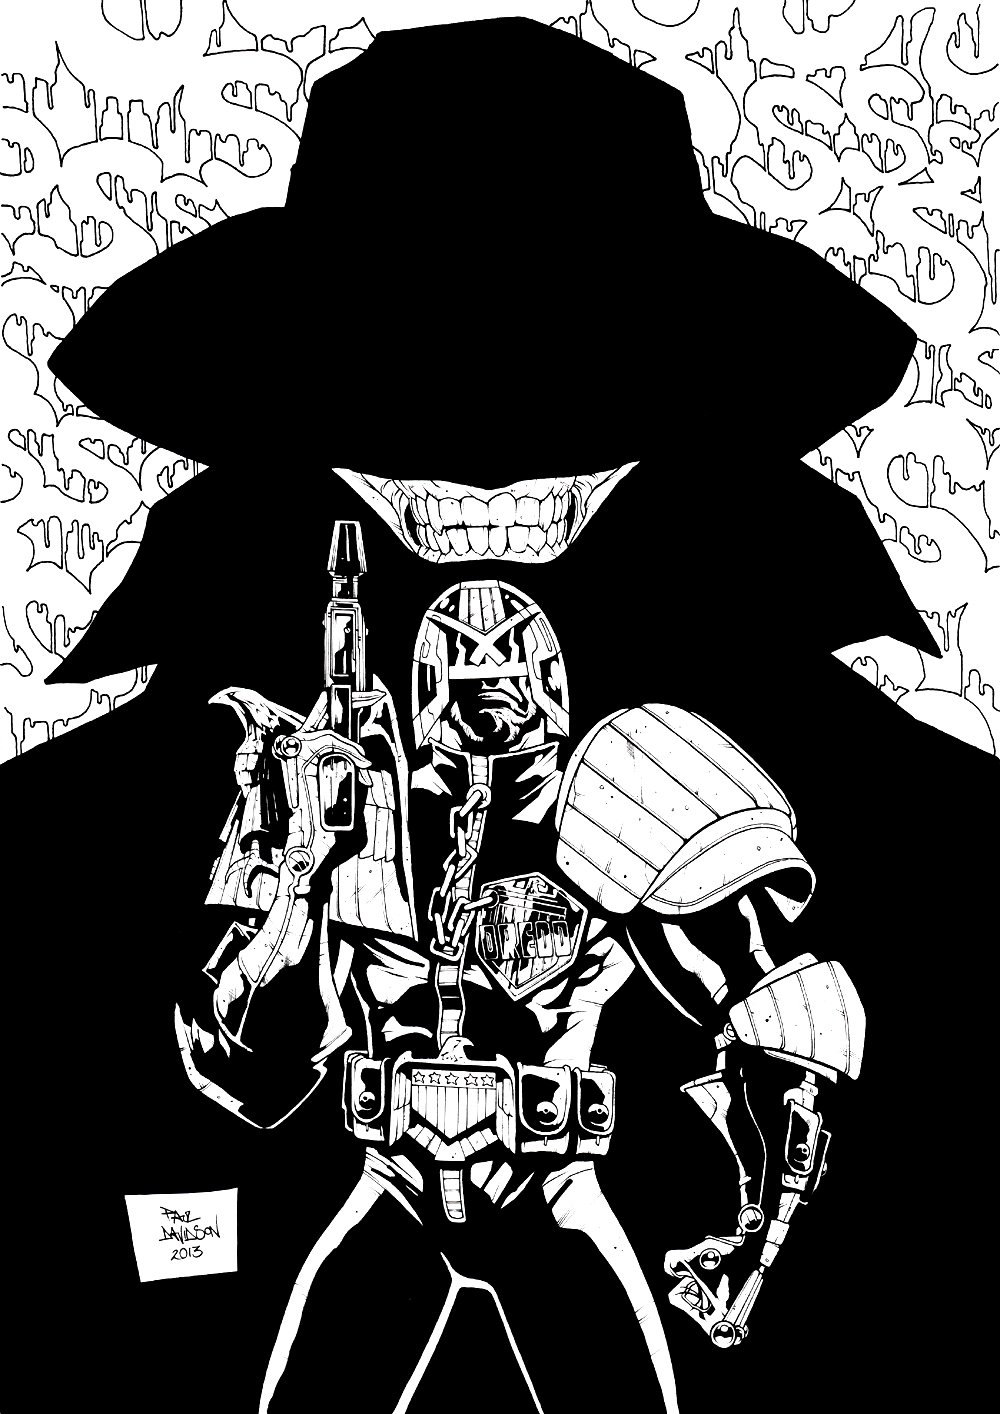 2000 AD #1826 Cover (AWESOME DREDD!) 2013